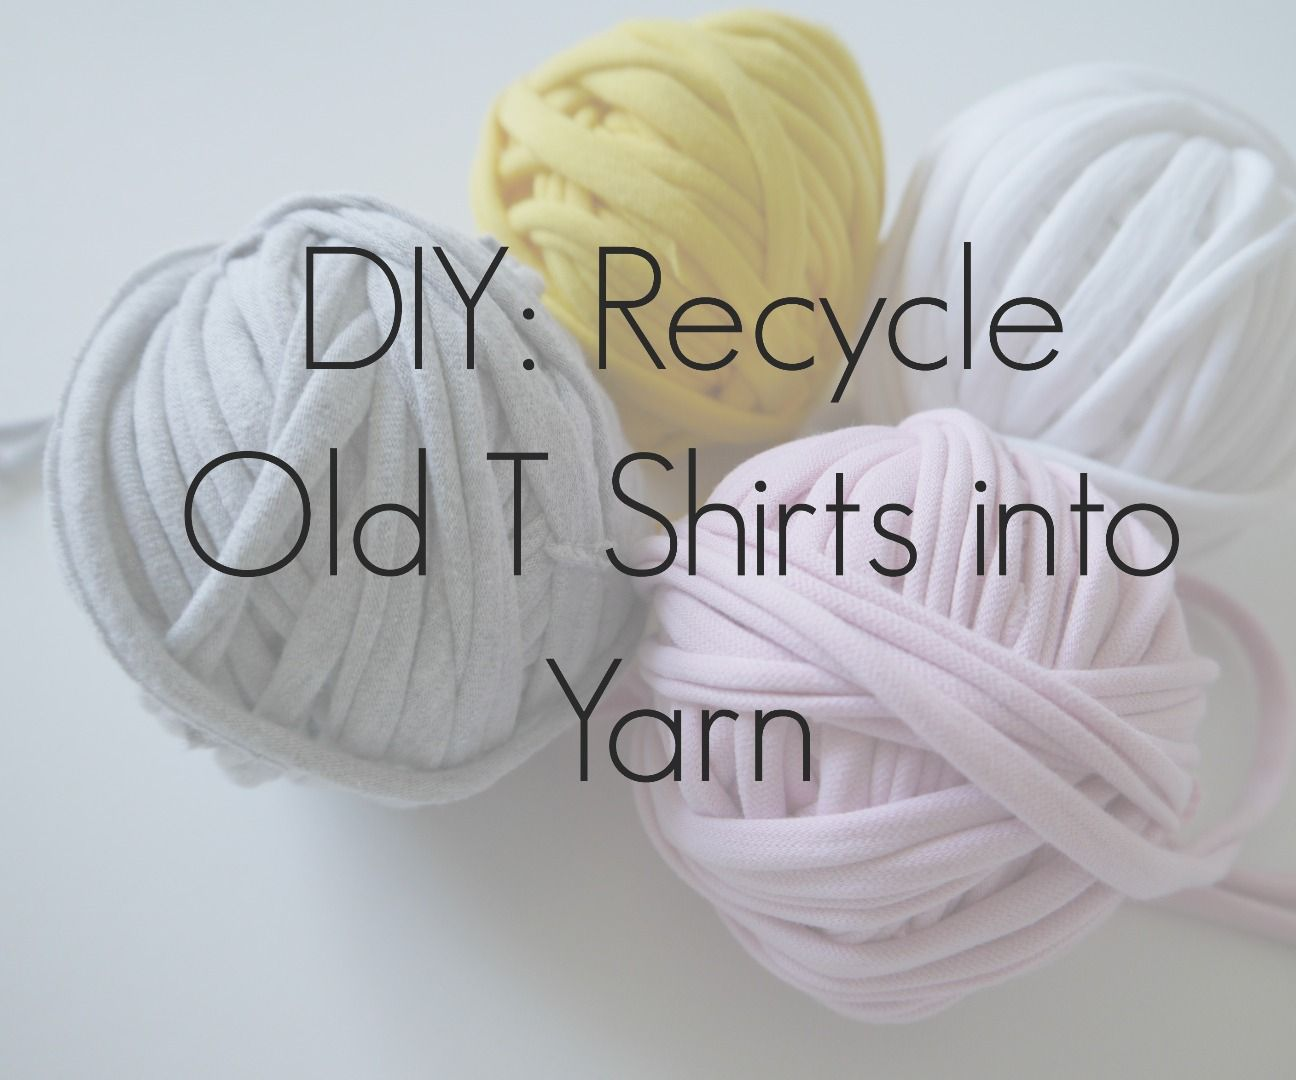 Recycle Old T Shirts into Yarn!